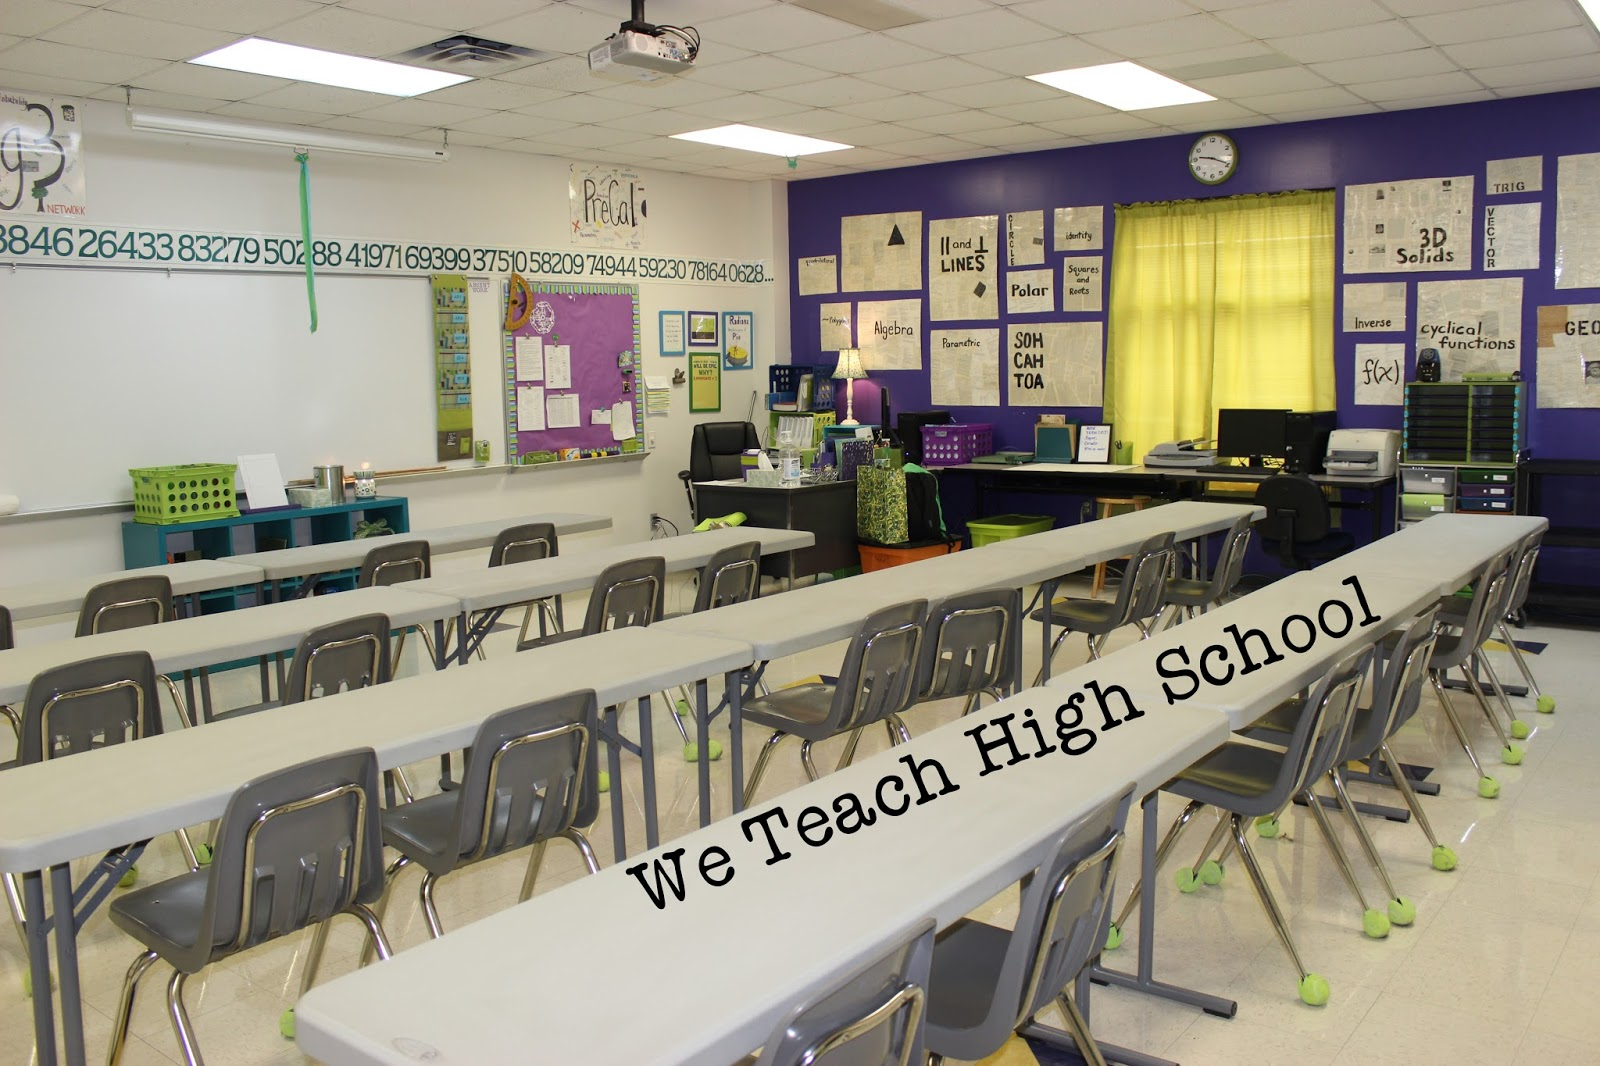 High School Math Classroom Design ~ We teach high school math classroom